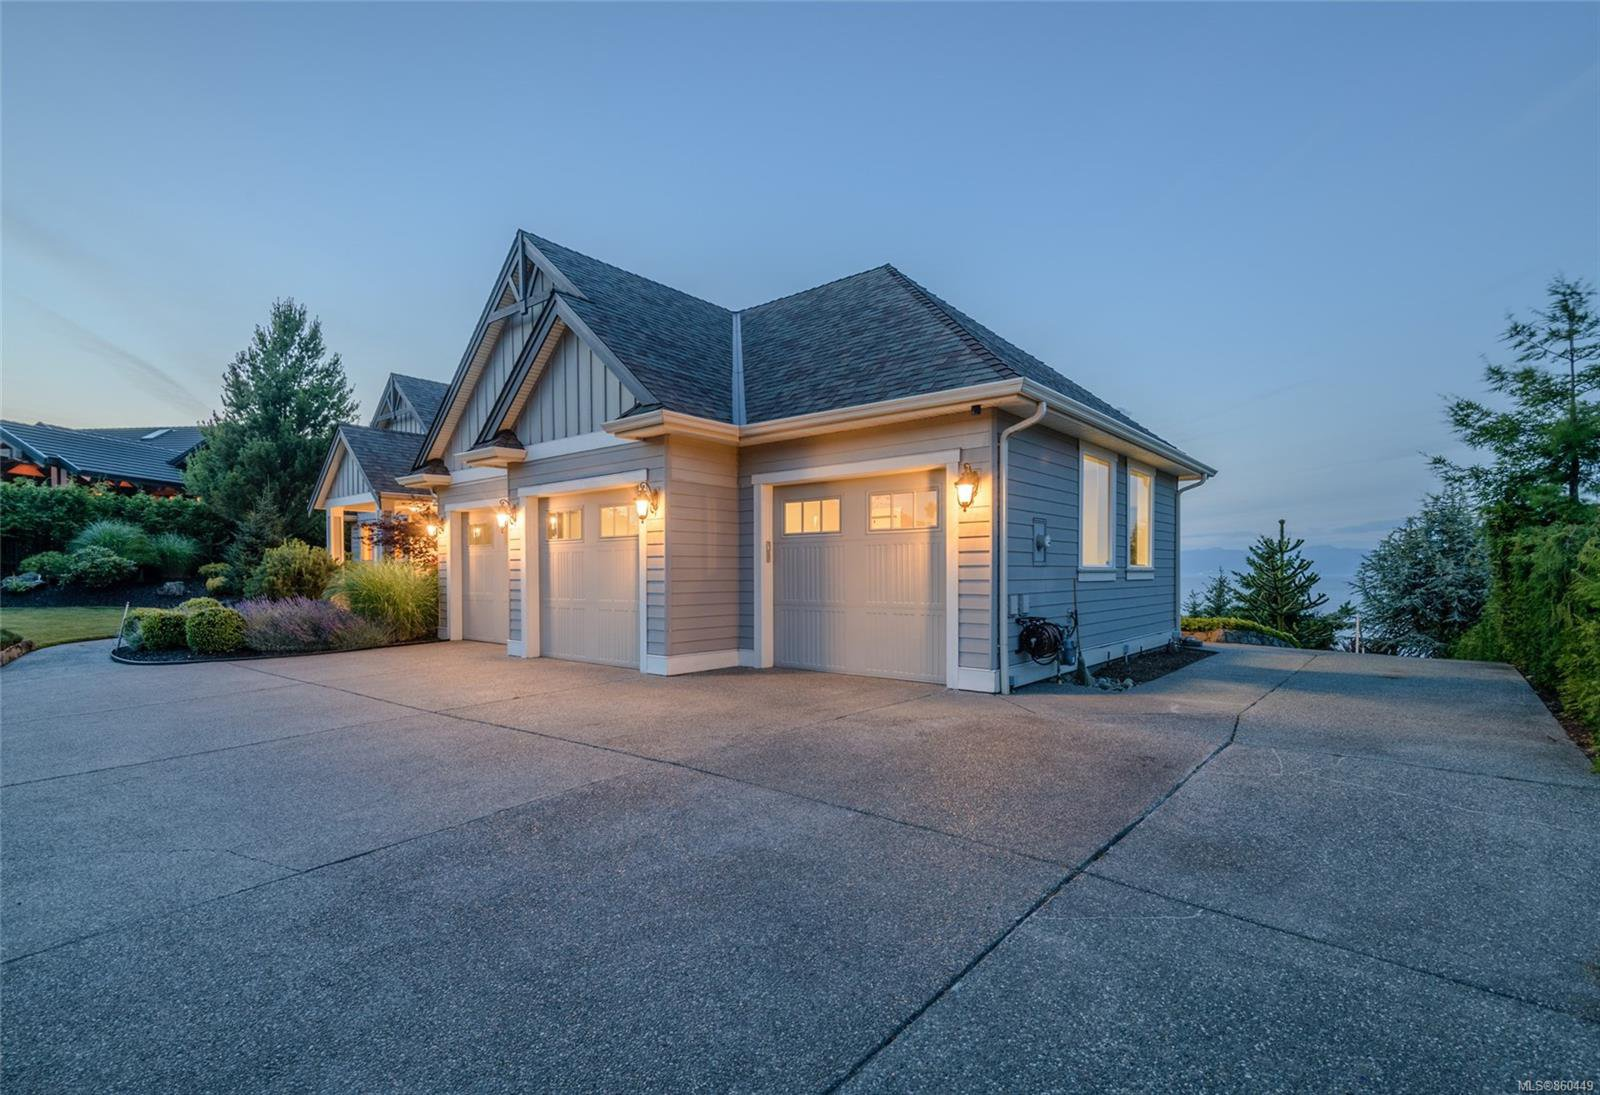 Photo 48: Photos: 5019 Hinrich View in : Na North Nanaimo House for sale (Nanaimo)  : MLS®# 860449